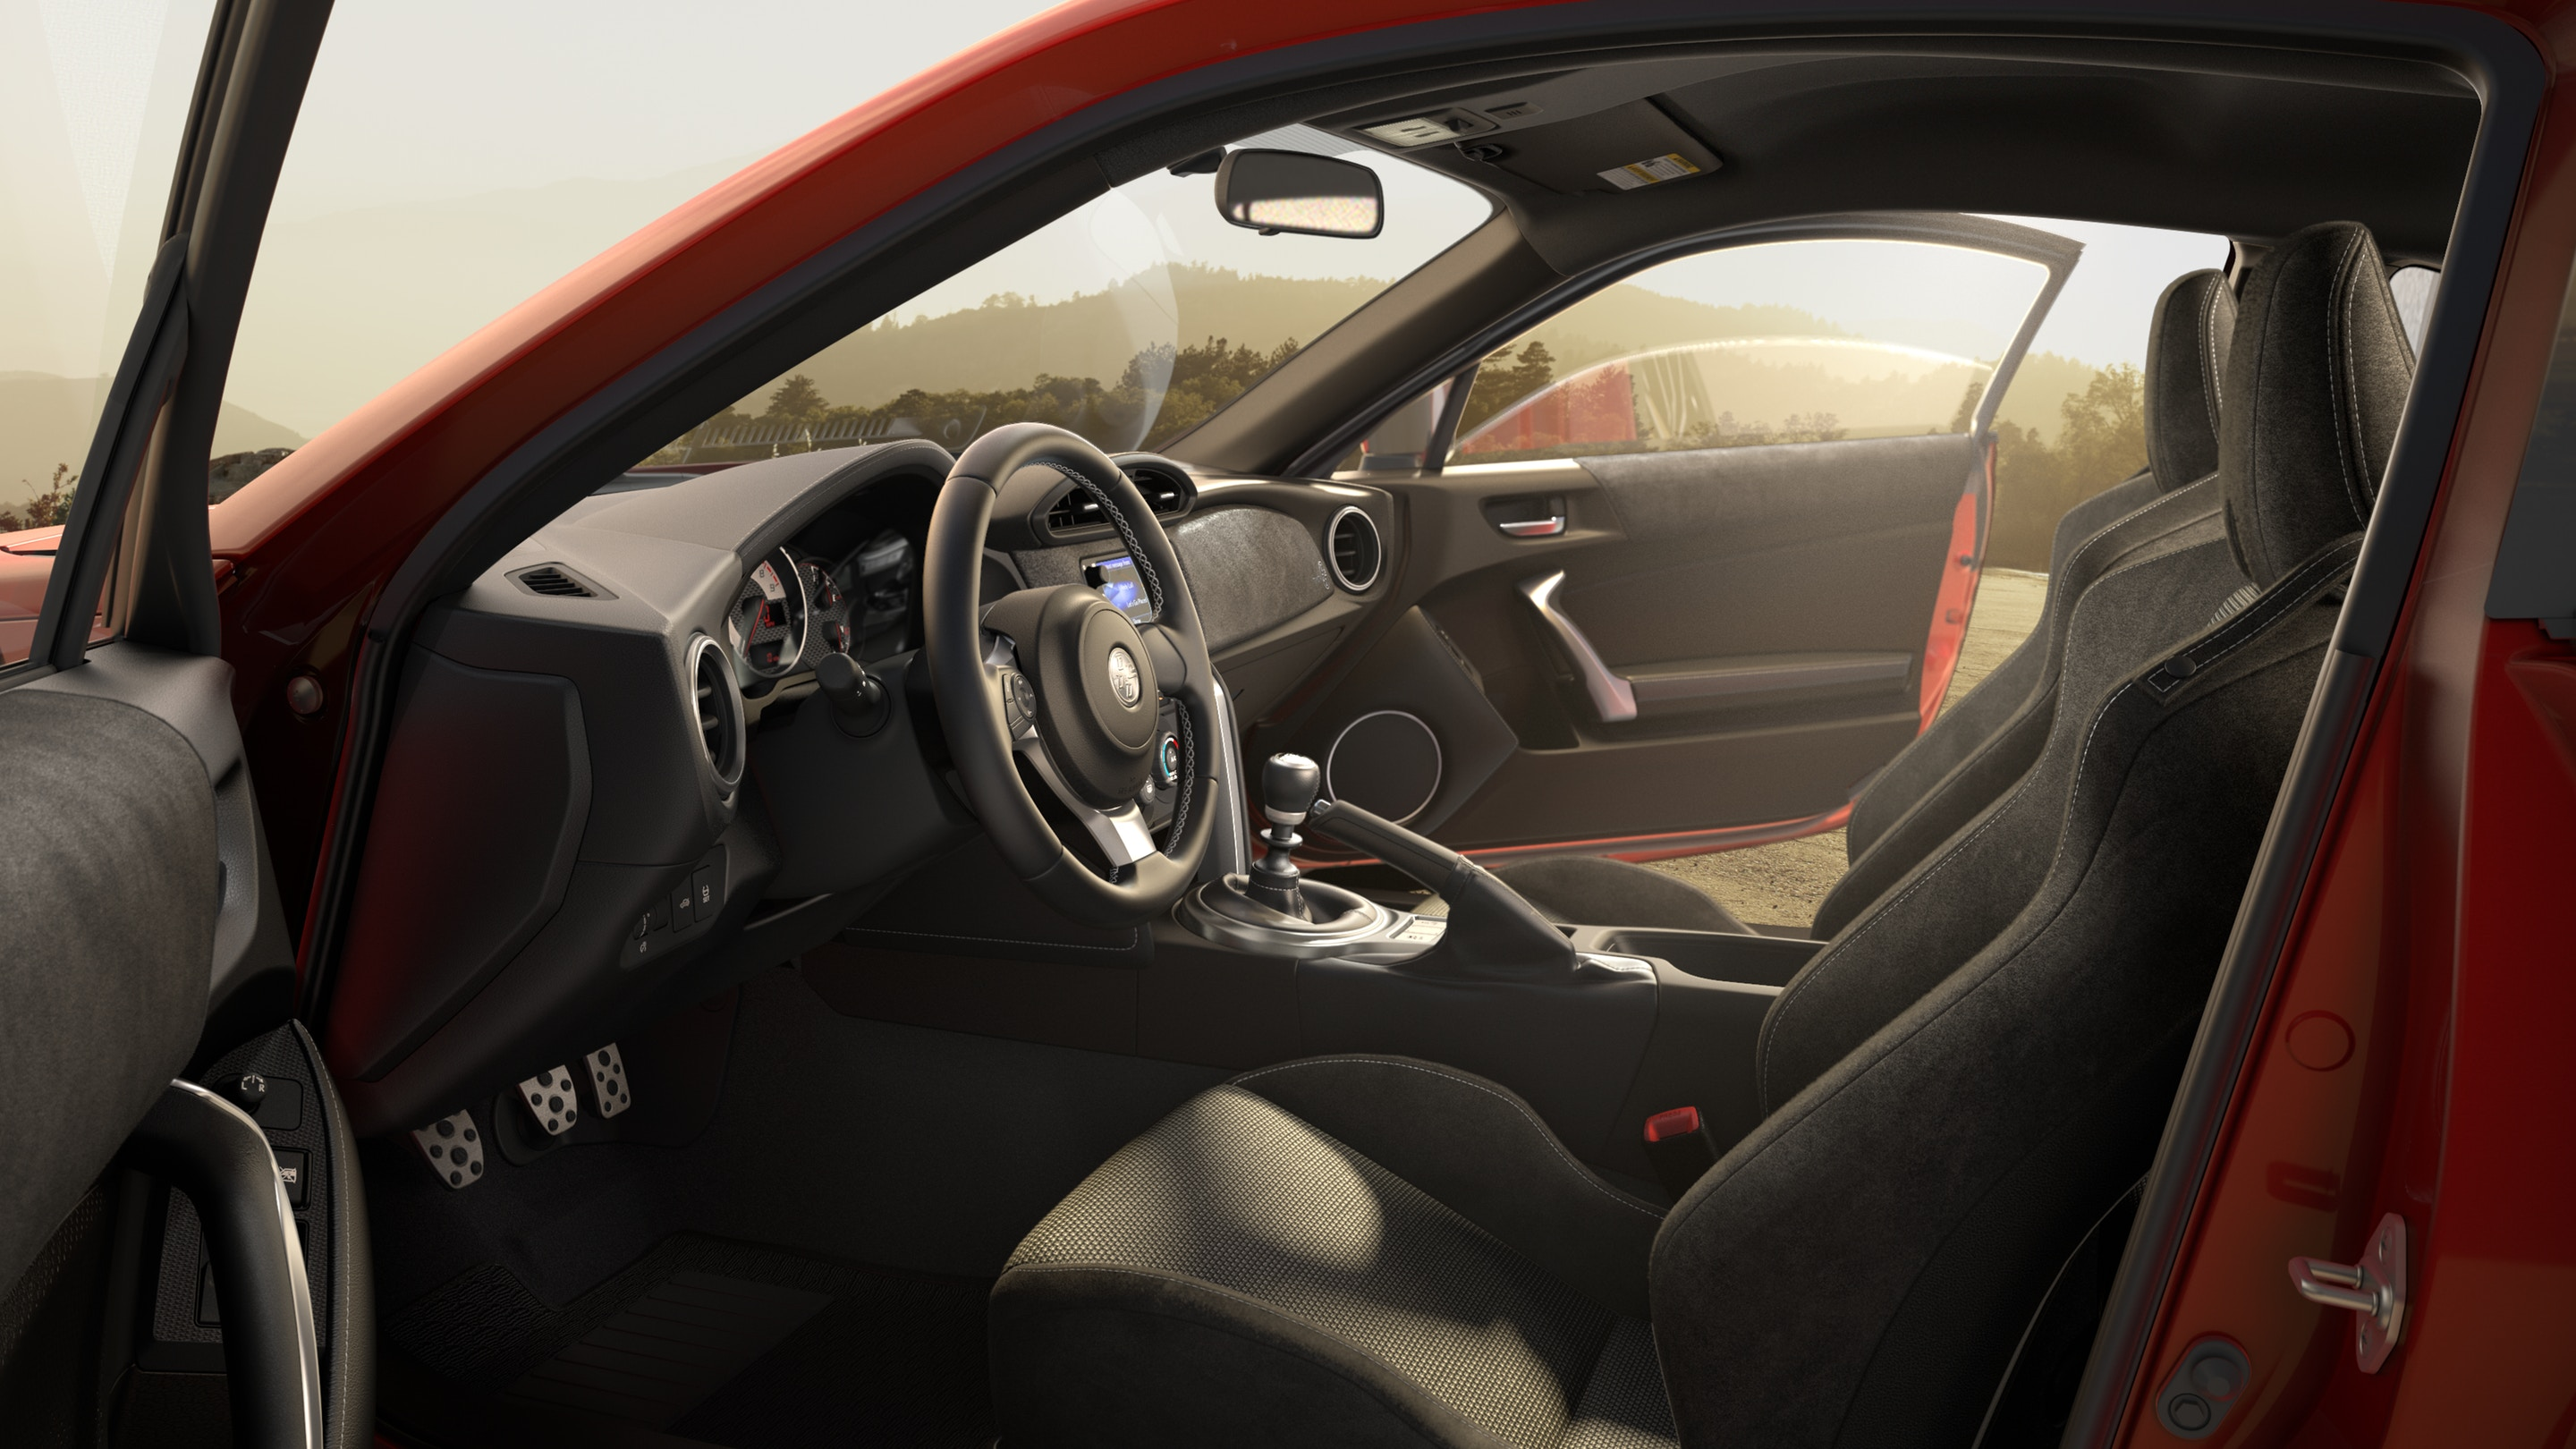 Interior of the Toyota 86